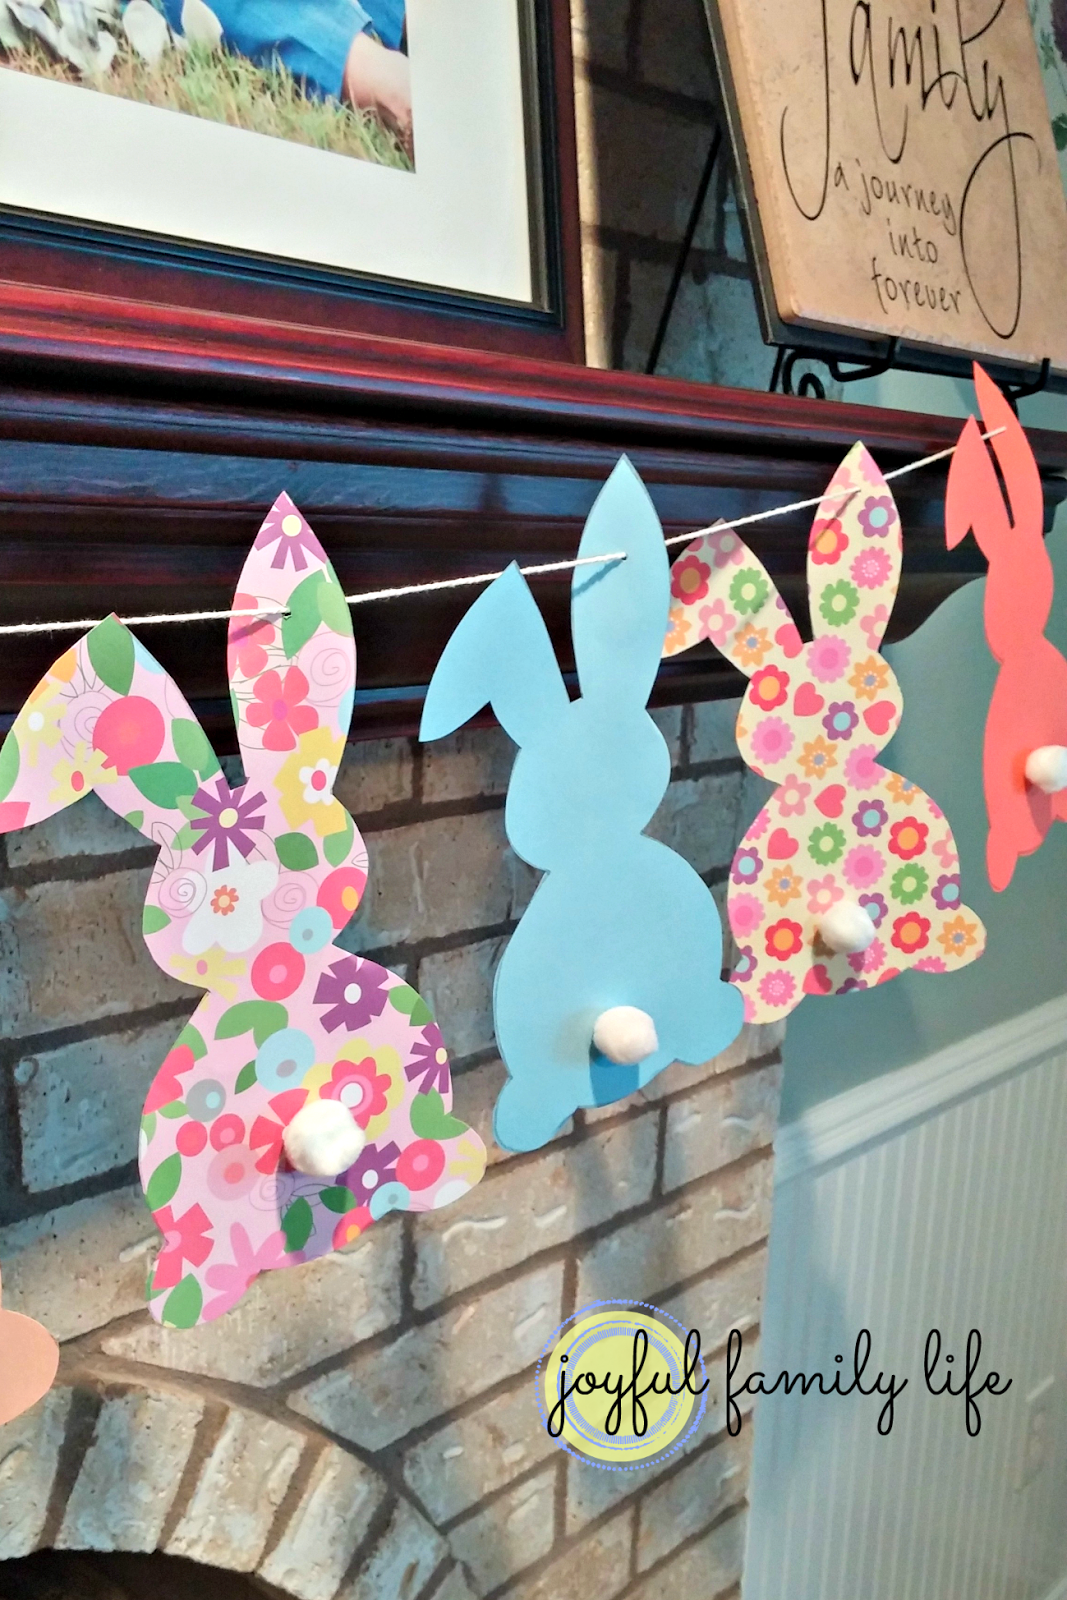 Bunny Banners Colorful Bunny Templates With Cotton Tails